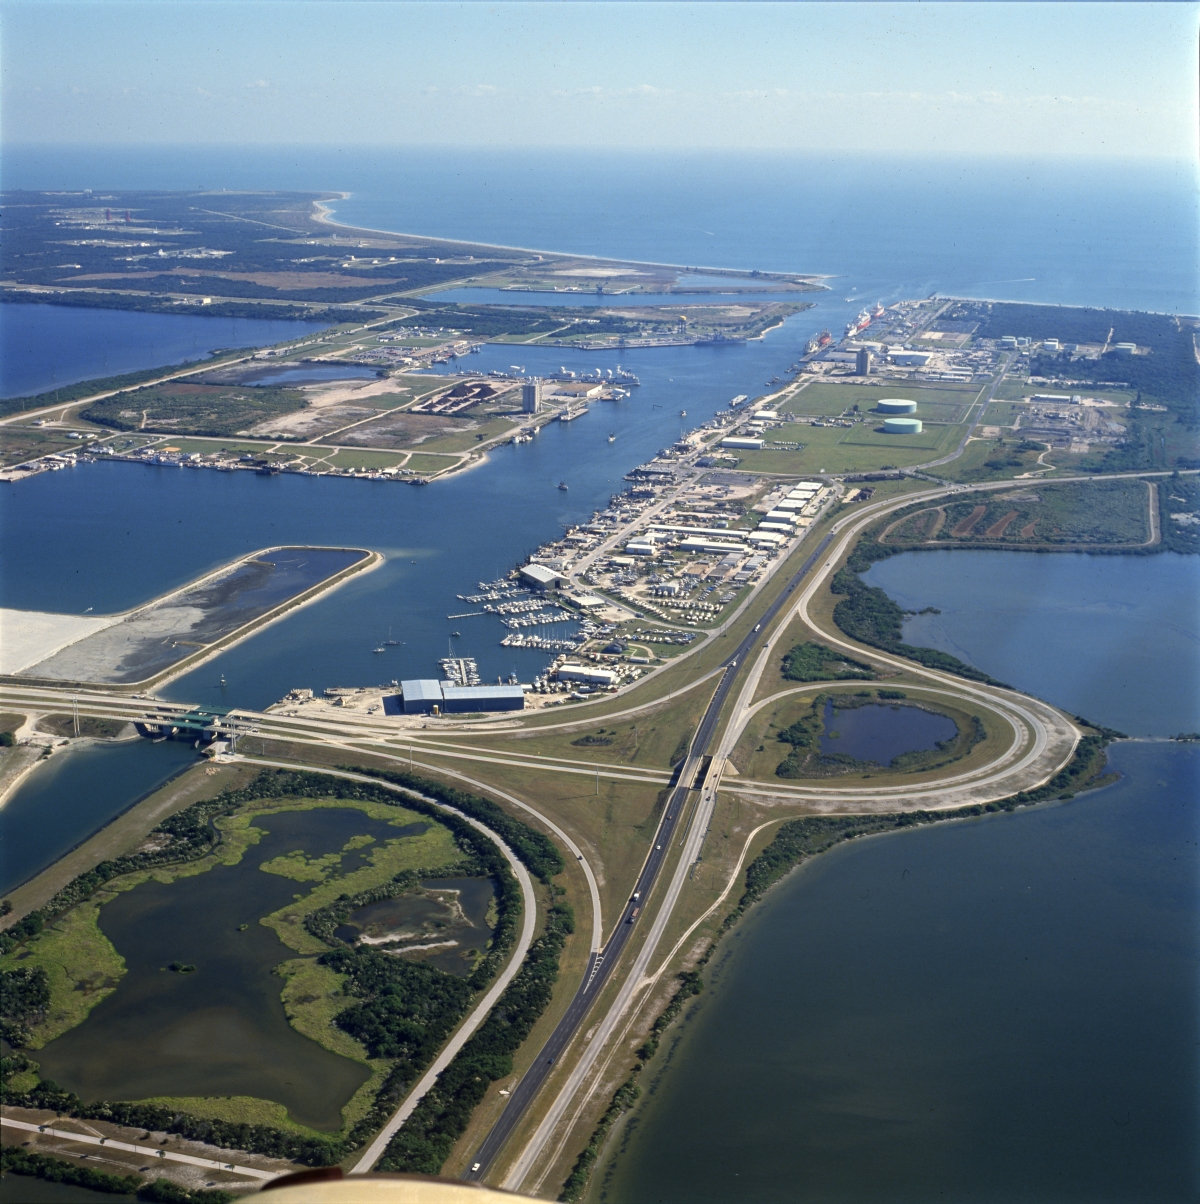 Aerial view looking east over Port Canaveral.